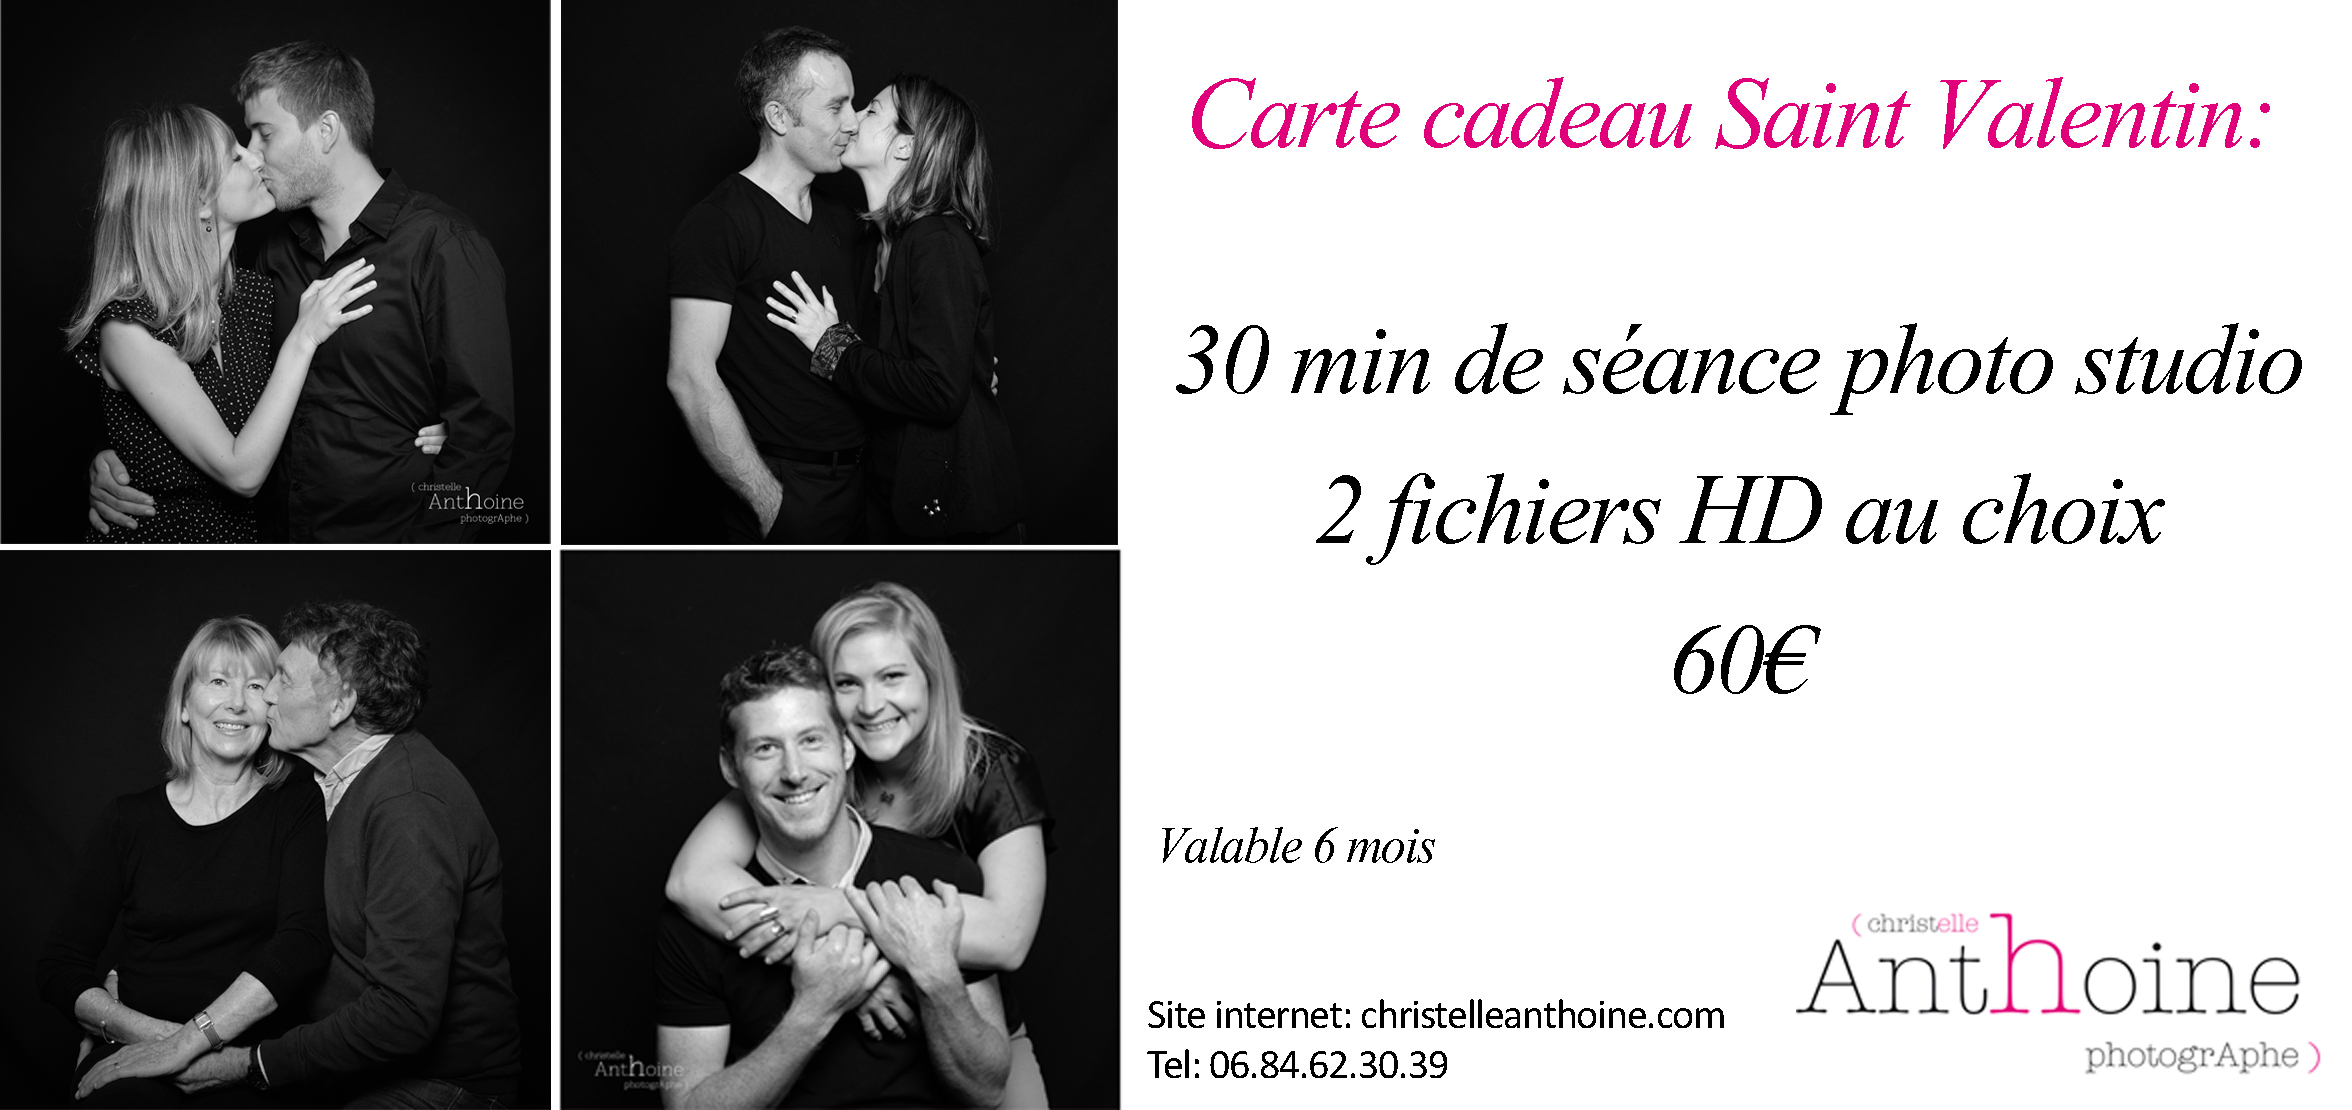 Carte cadeau séance photo saint valentin photographe Bretagne